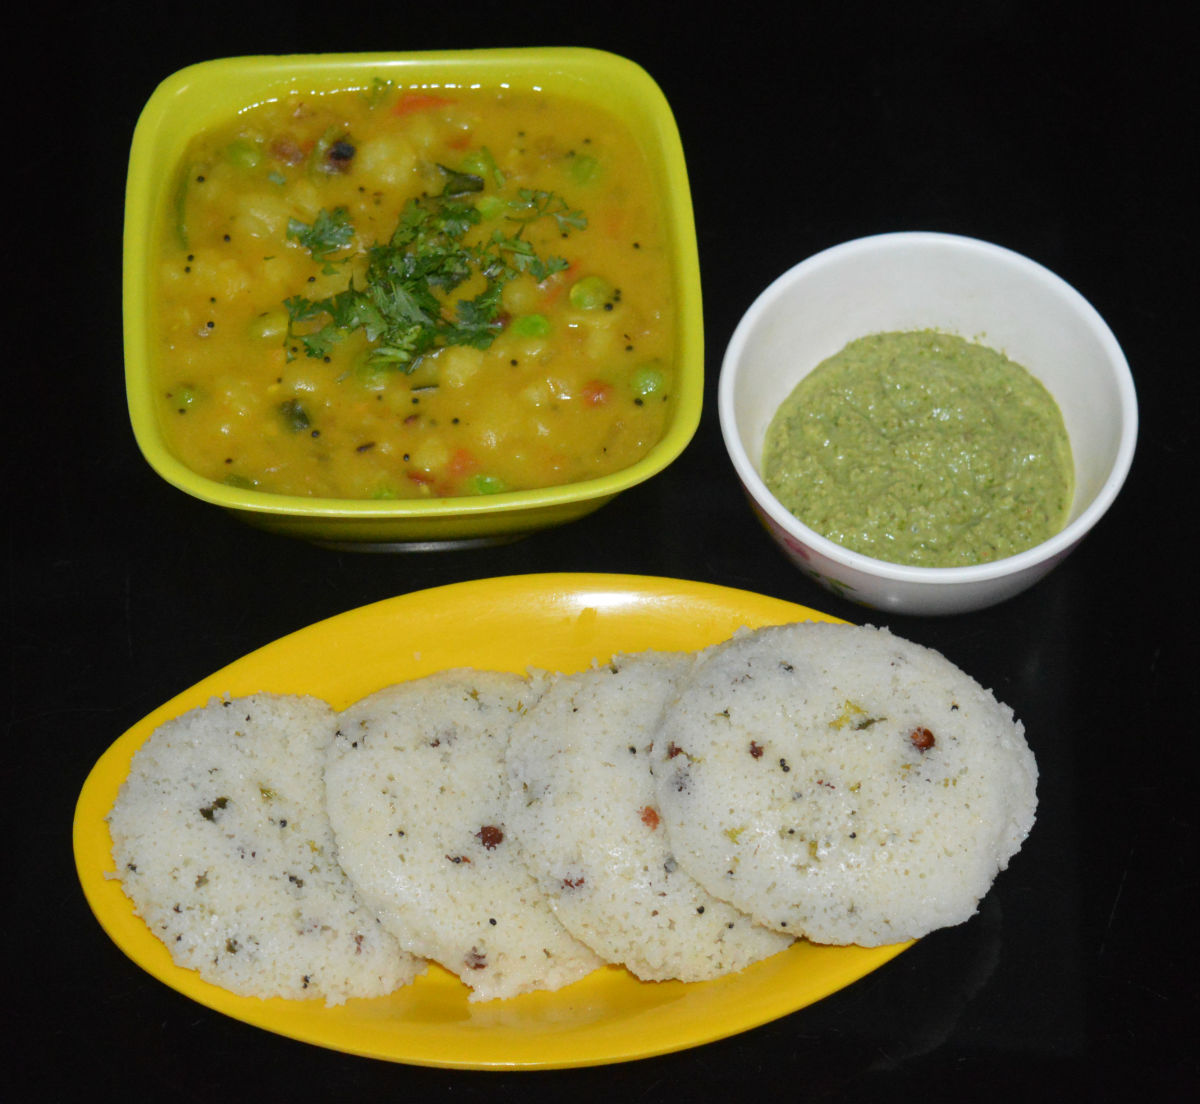 Serve 3-4 rava idlis in a plate with a spicy chutney. I served them with a vegetable sagu and a spicy chutney.